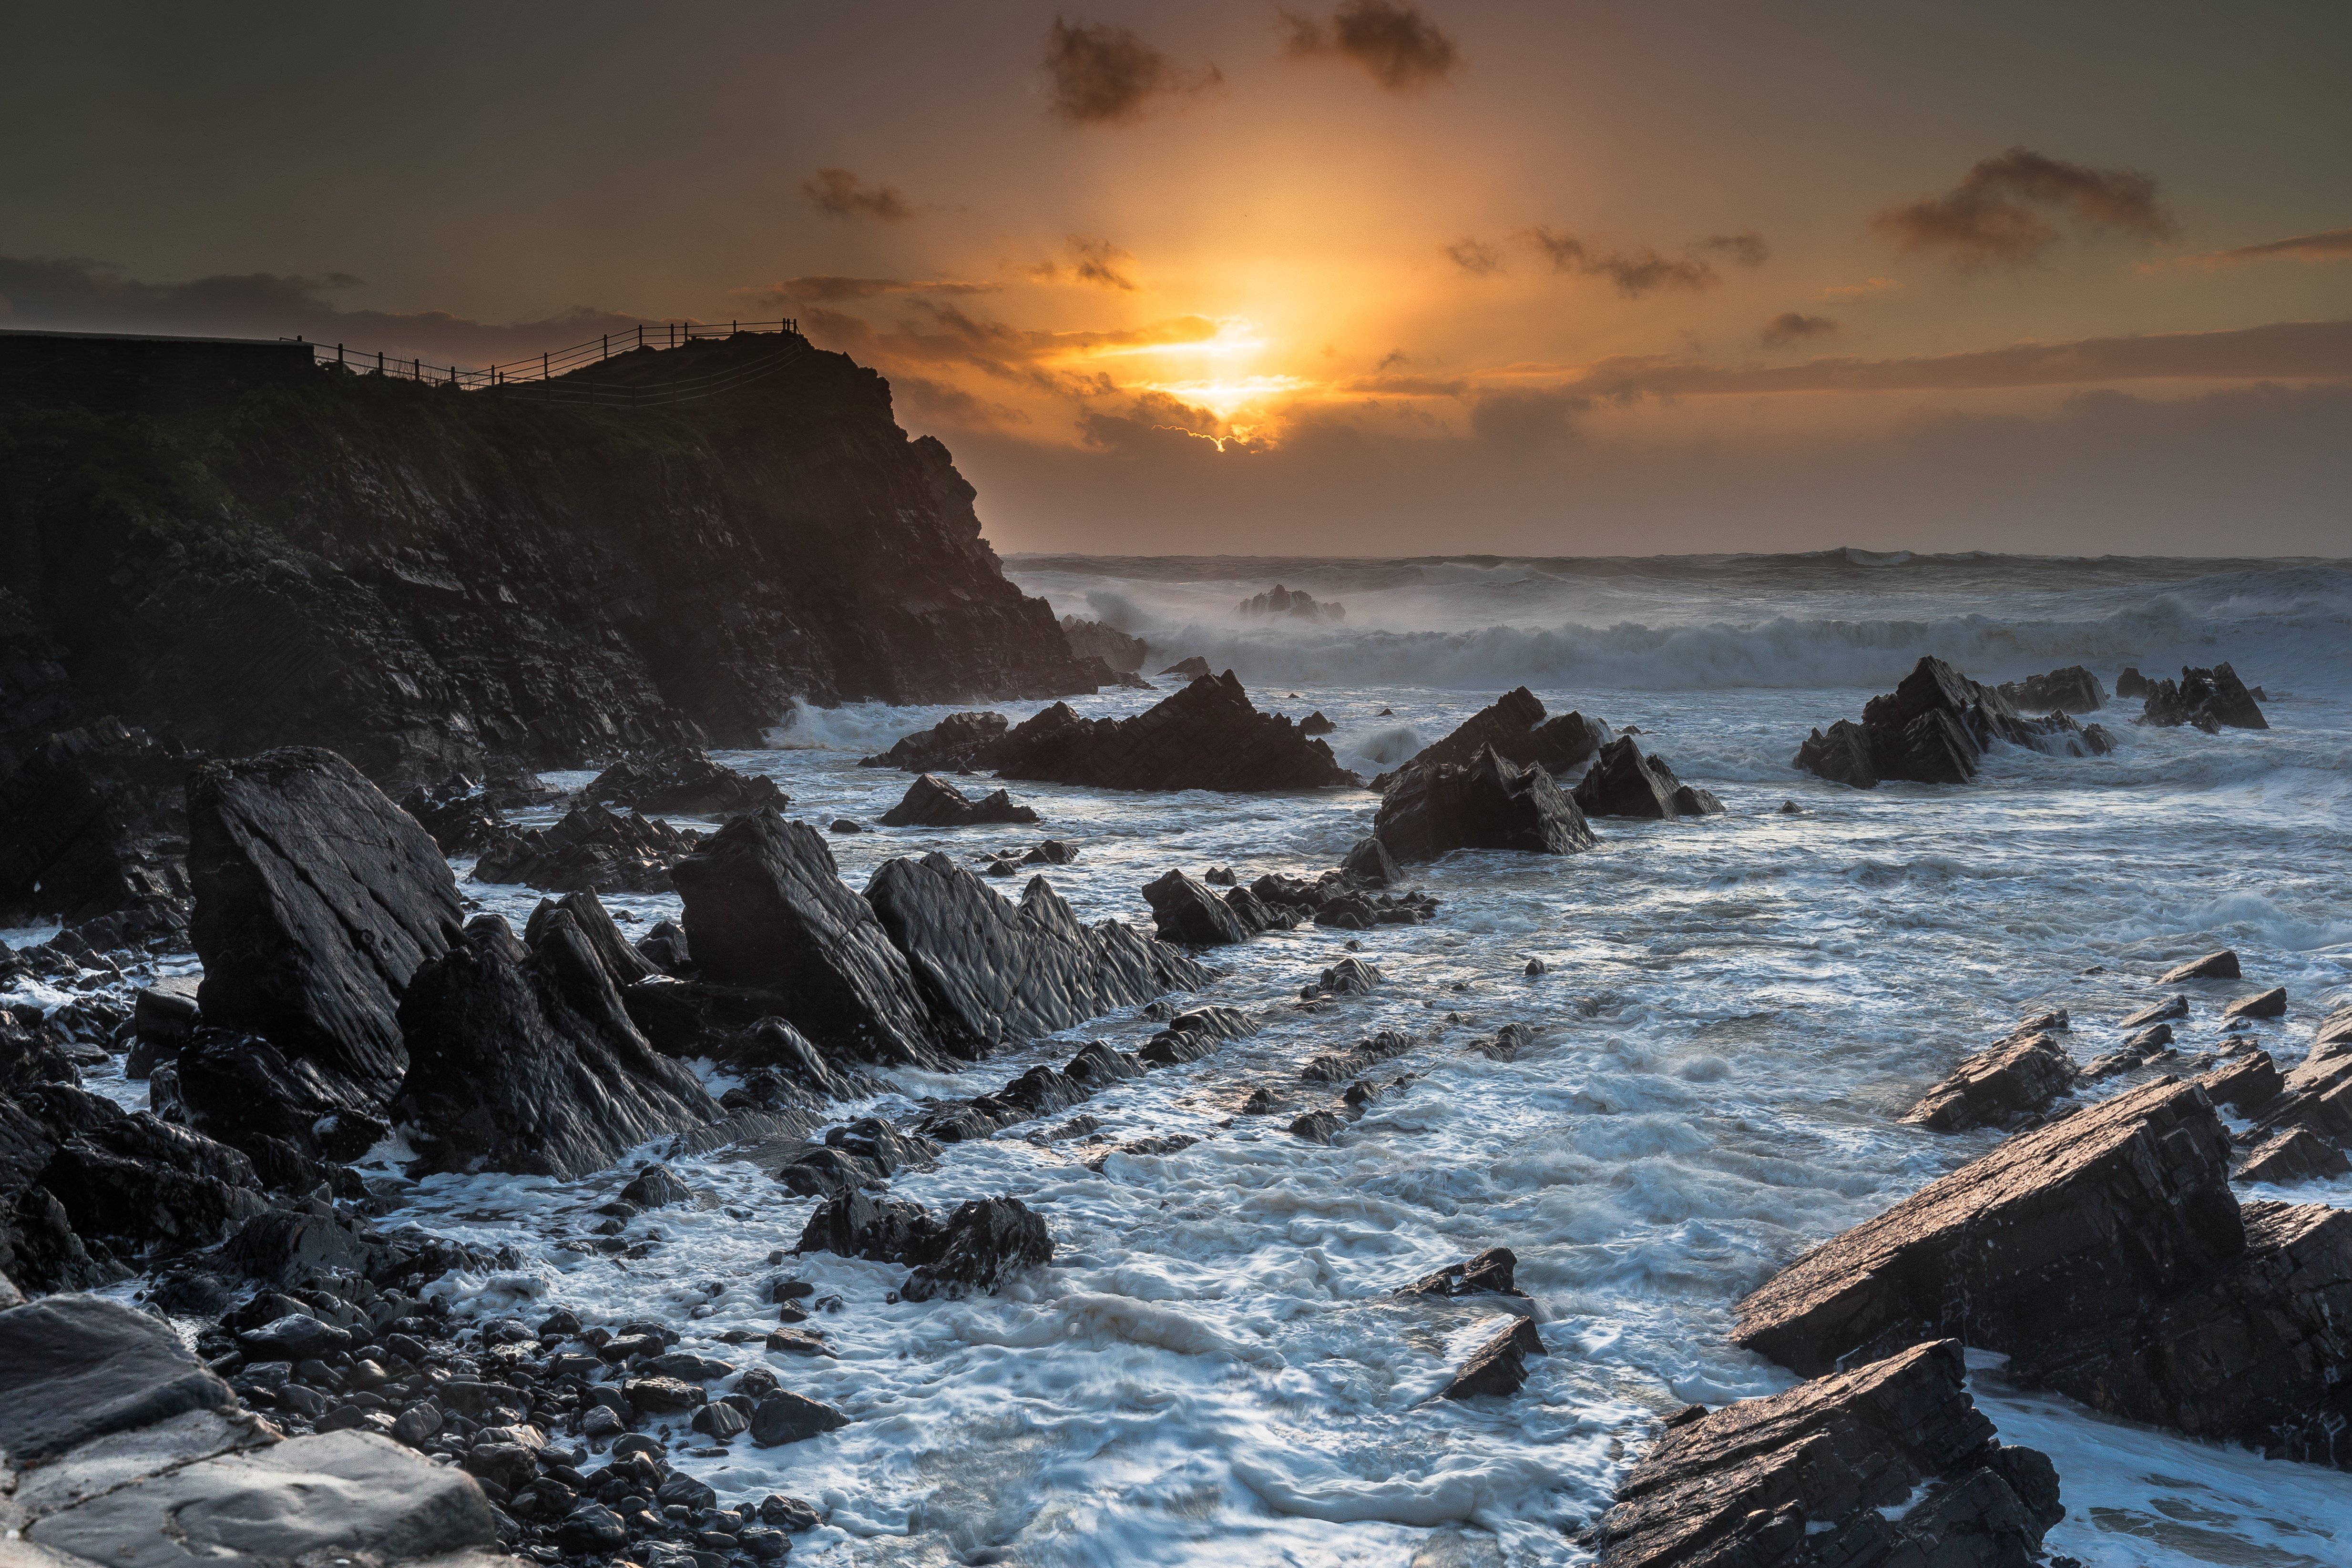 139988 download wallpaper Nature, Sunset, Sea, Rocks, Waves, Landscape screensavers and pictures for free